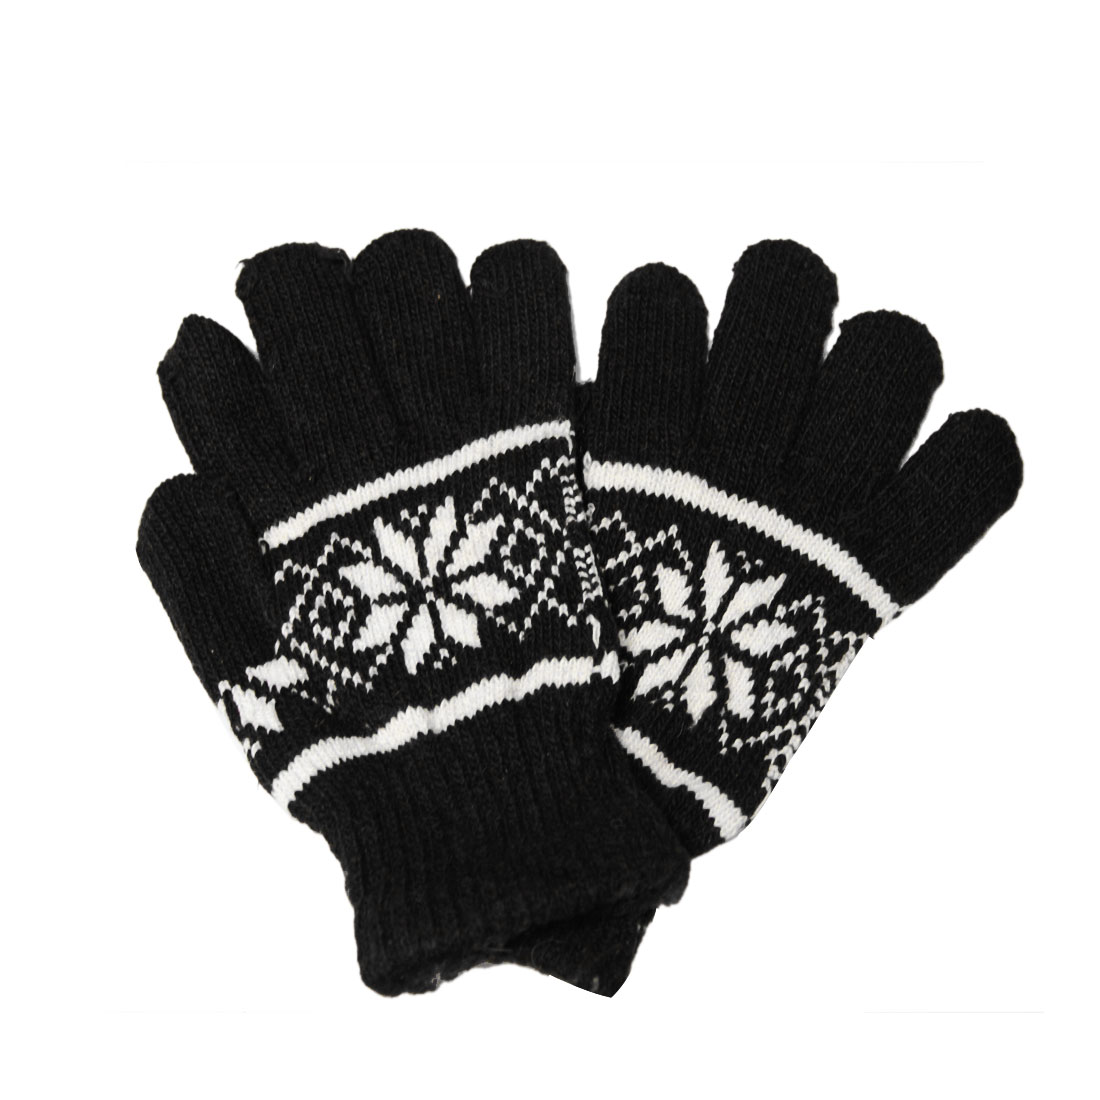 Unisex Black White Chrismas Nordic Pattern Warmer Knitting Gloves